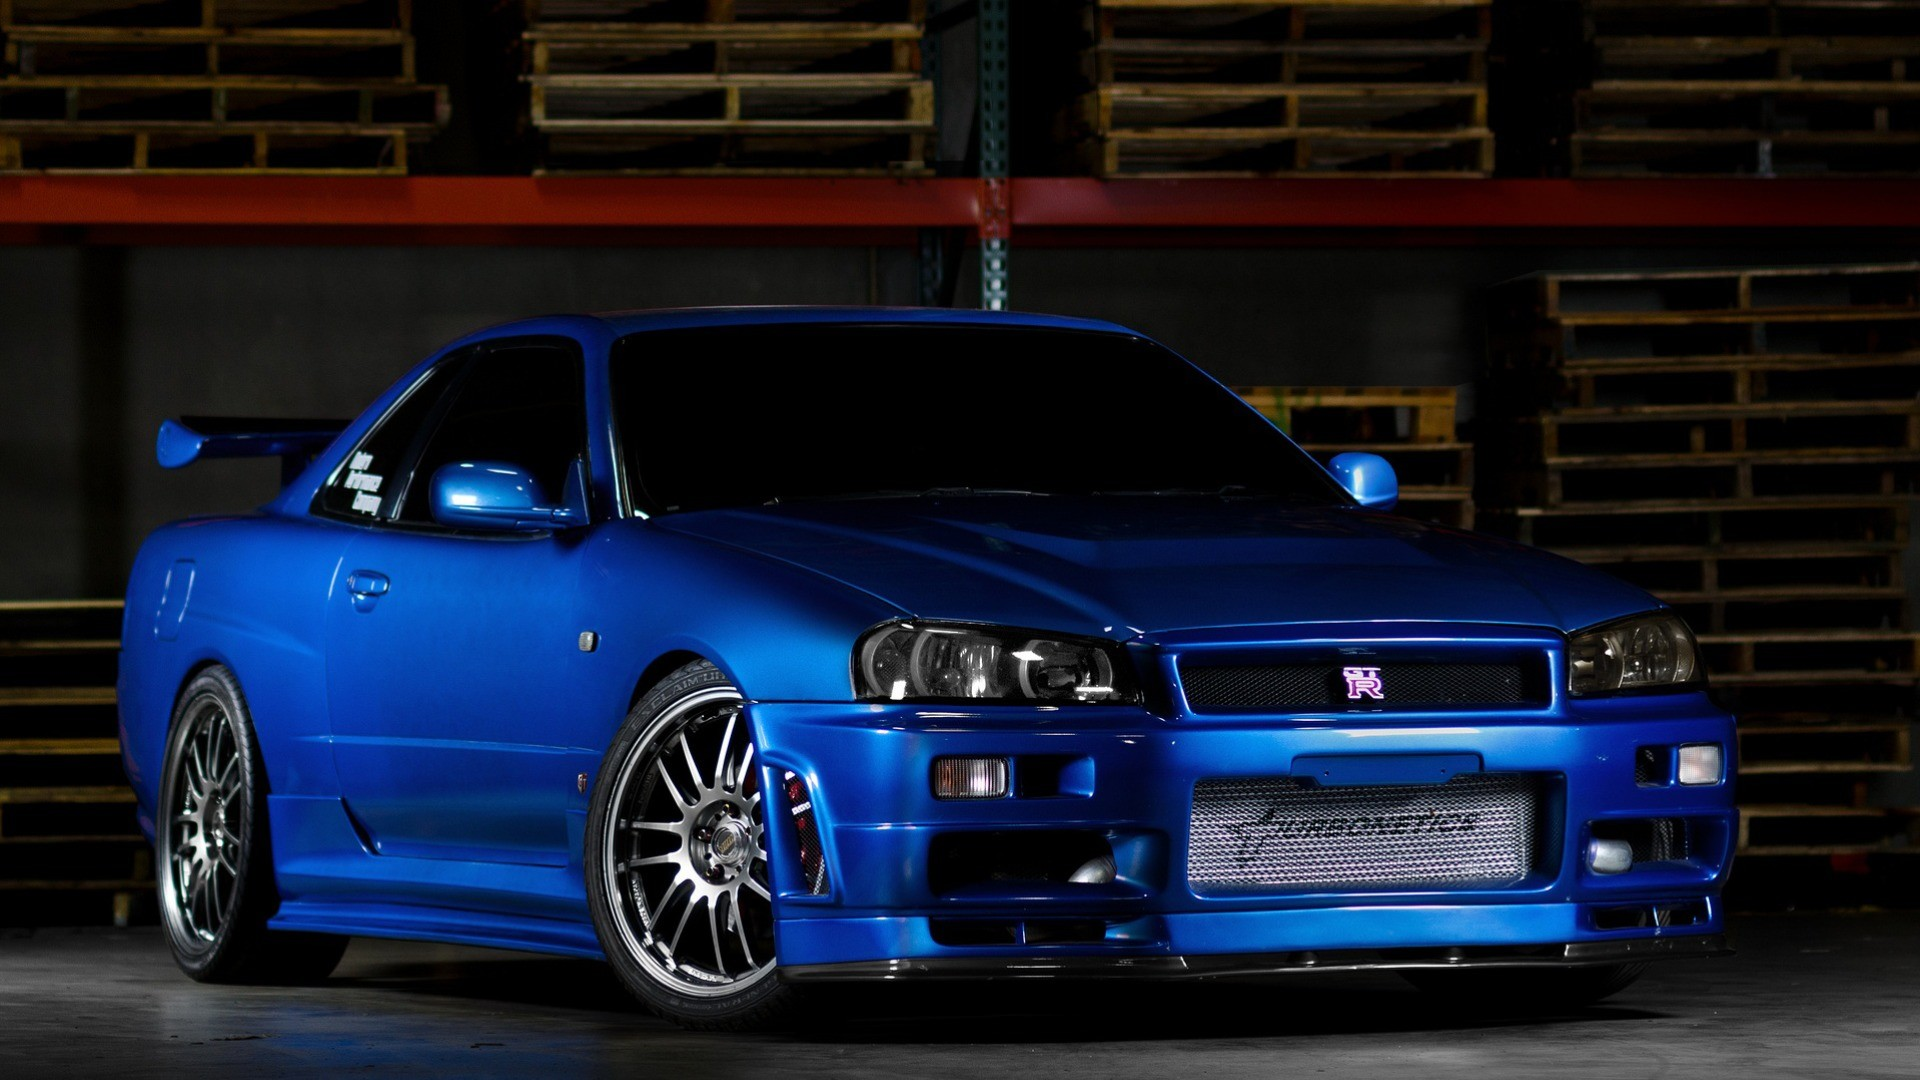 Wallpaper nissan skyline, gtr, r34, blue, front view